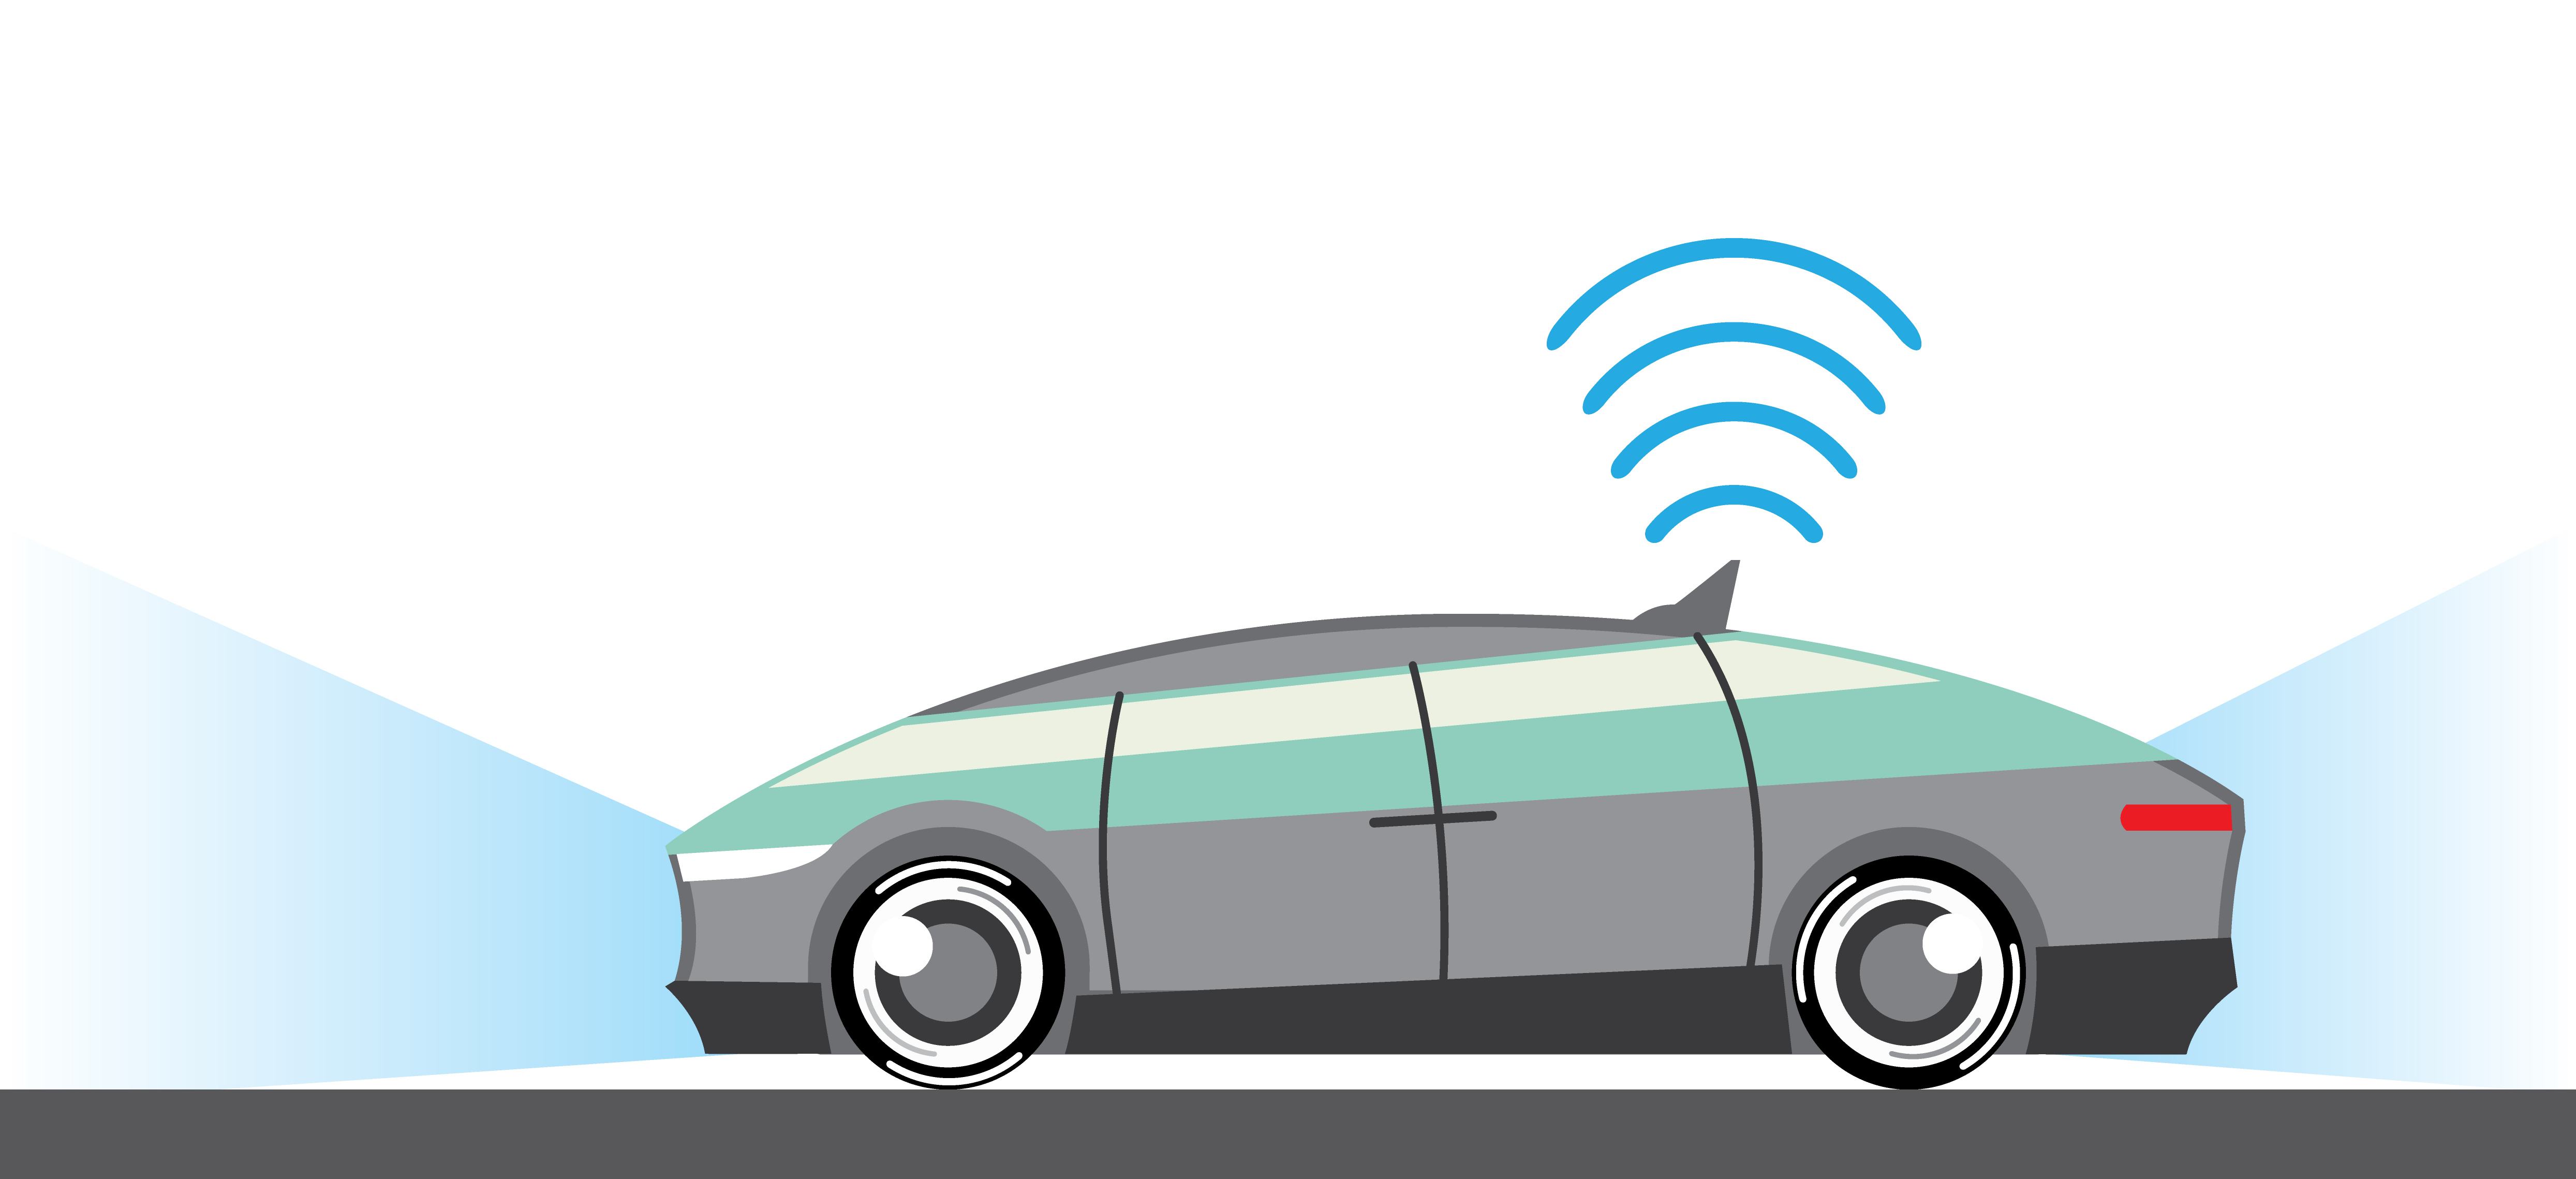 Connected vehicle illustration